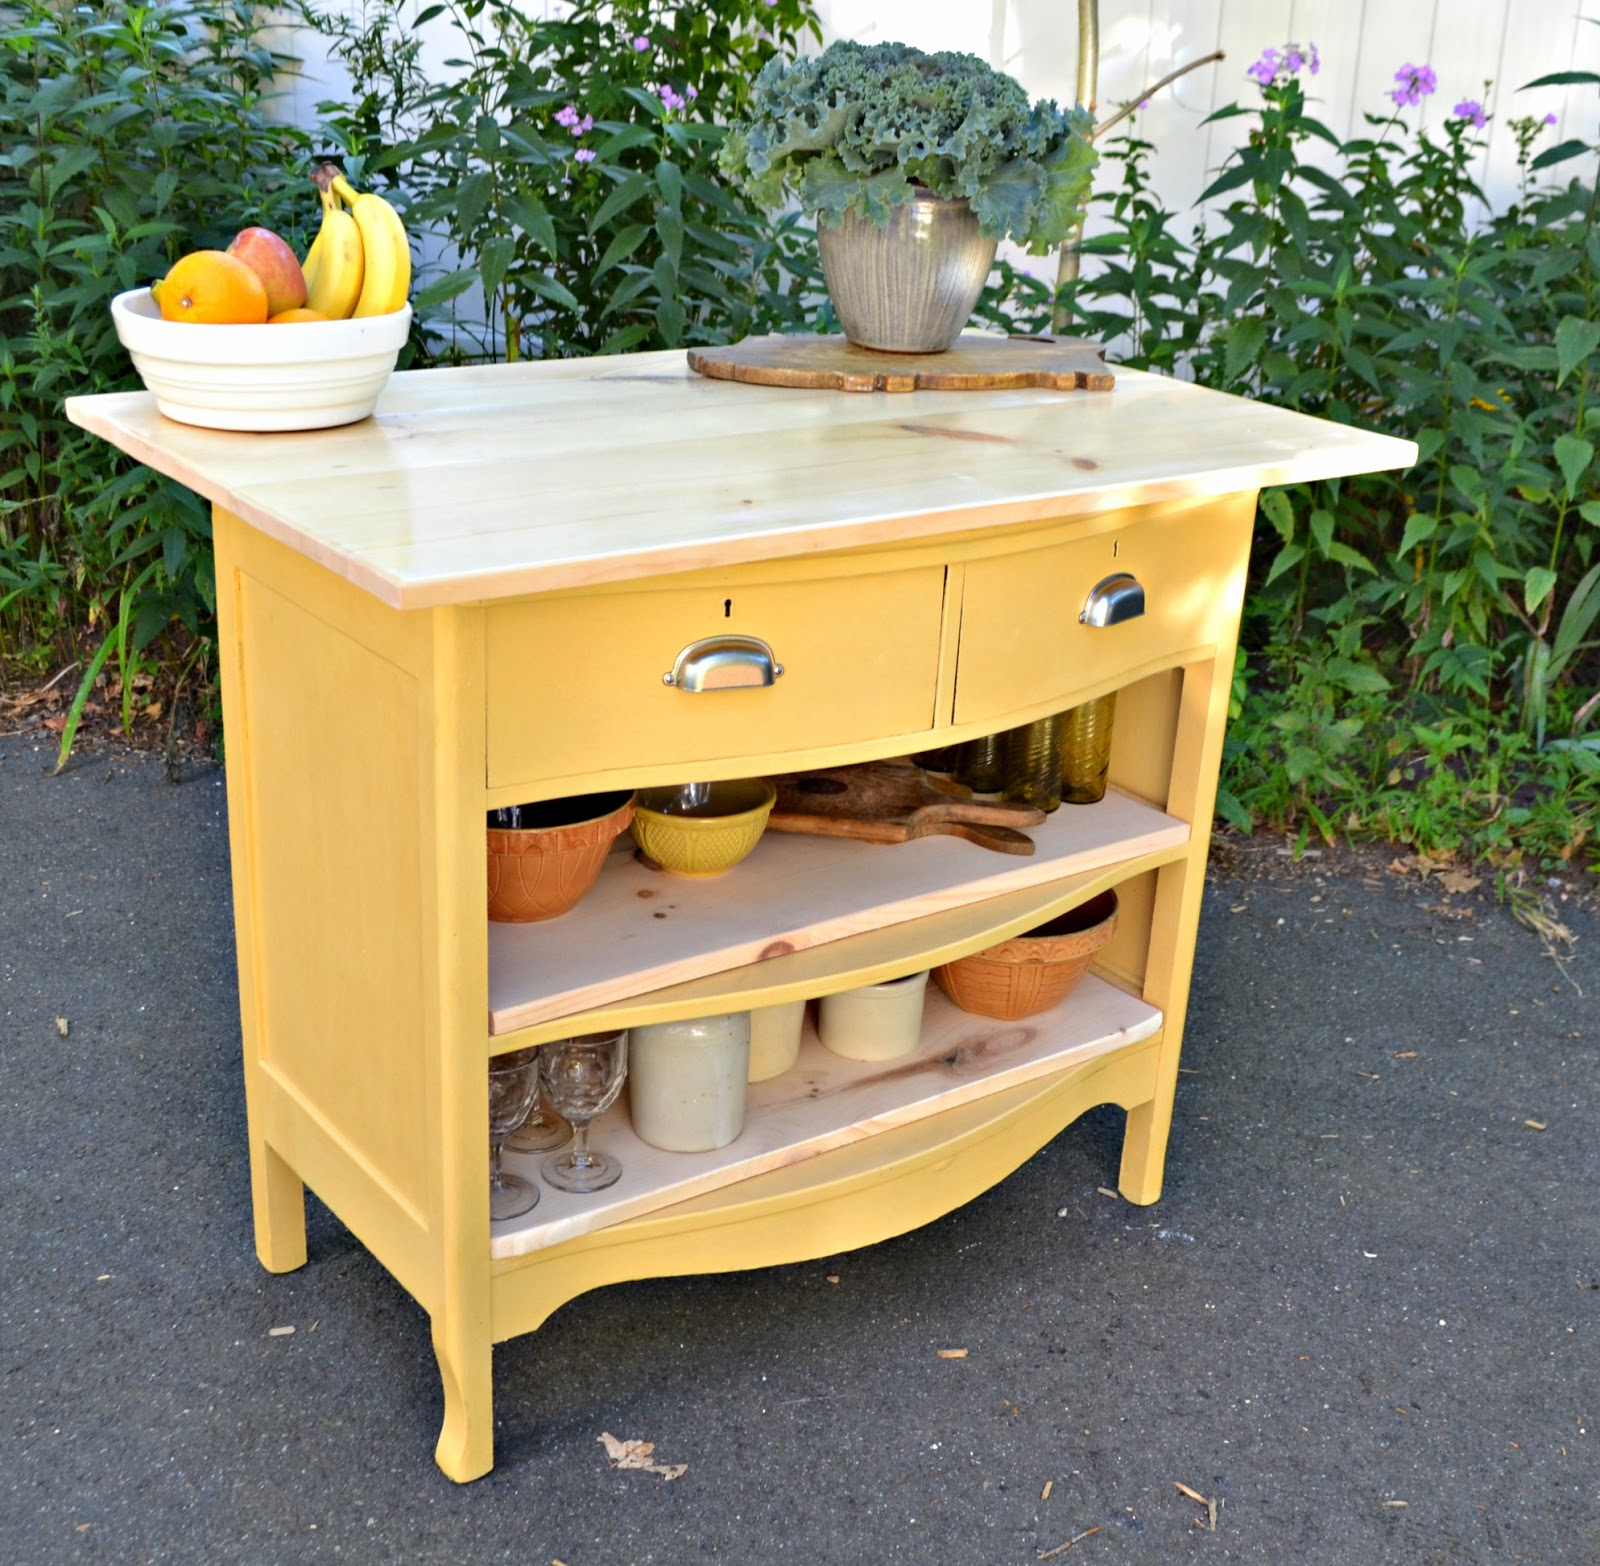 Kitchen Island Made From Antique Buffet: Heir And Space: Antique Dresser Turned Kitchen Island